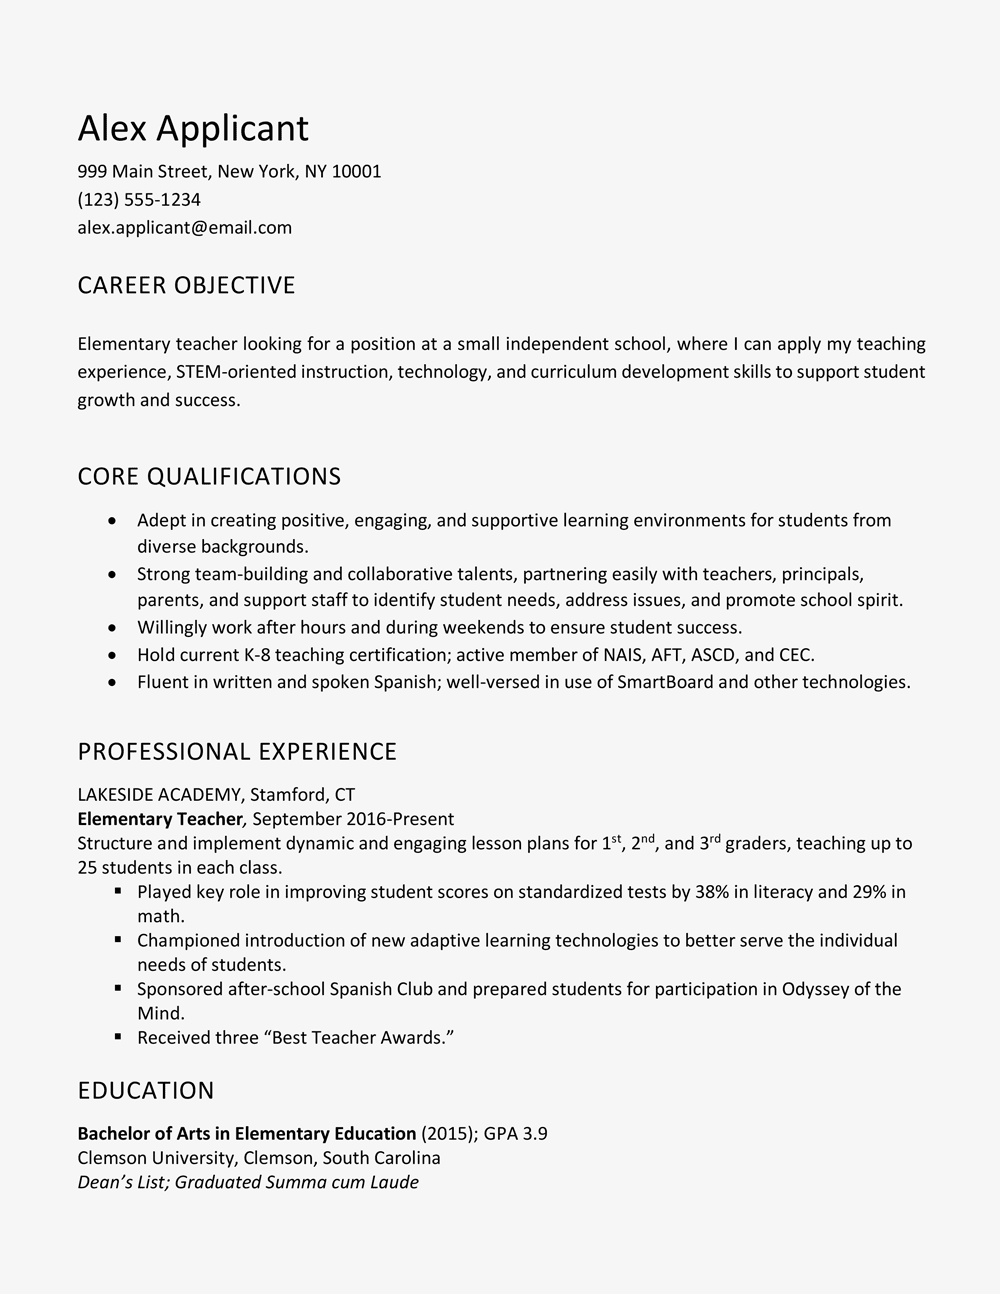 Resume Objective Examples And Writing Tips - Career-objective-on-resume